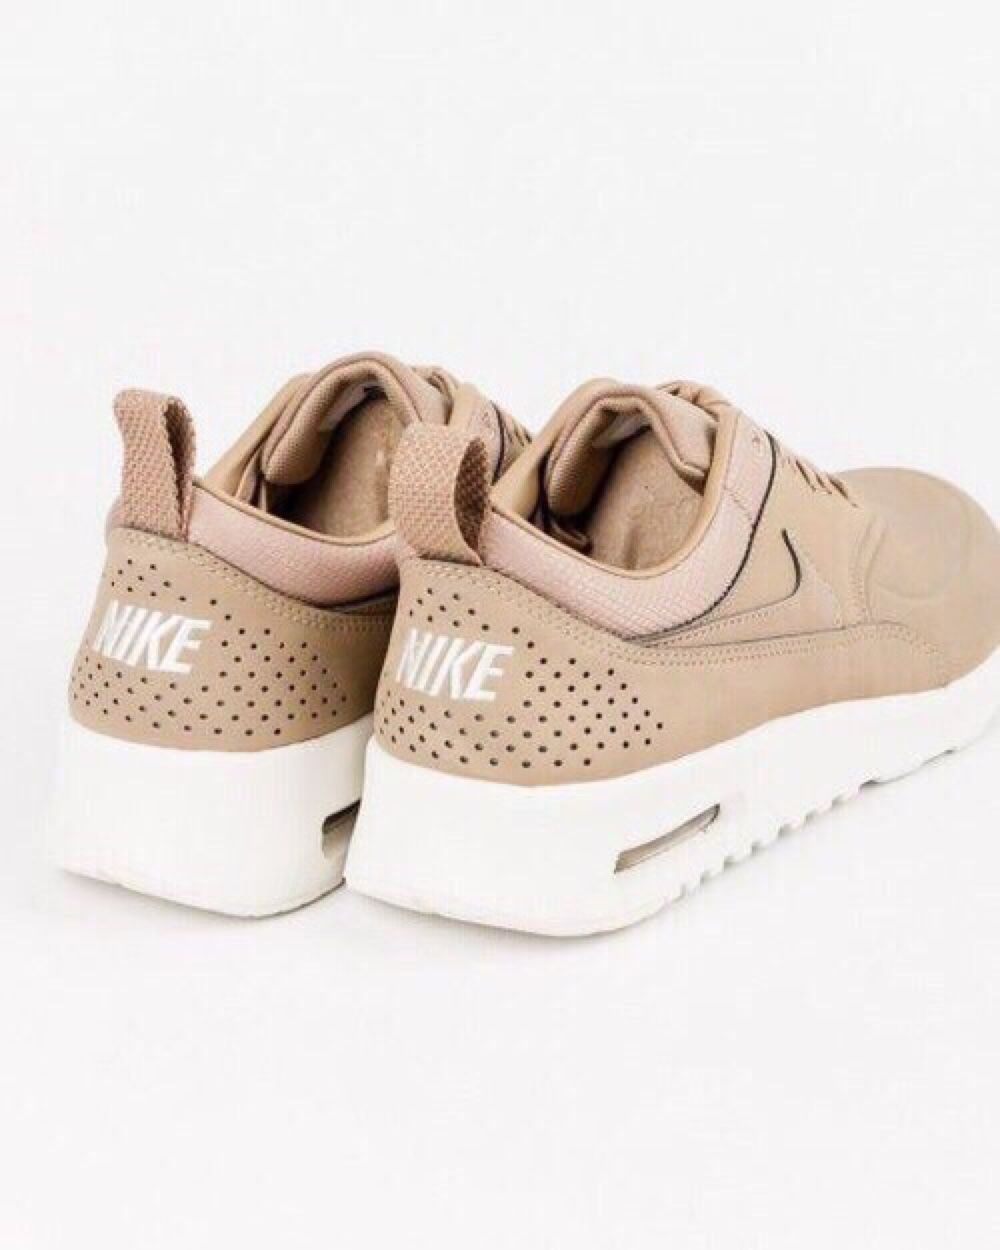 Tan Nikes  Shoes  Sapatilhas Nike, Look, Looks-6549